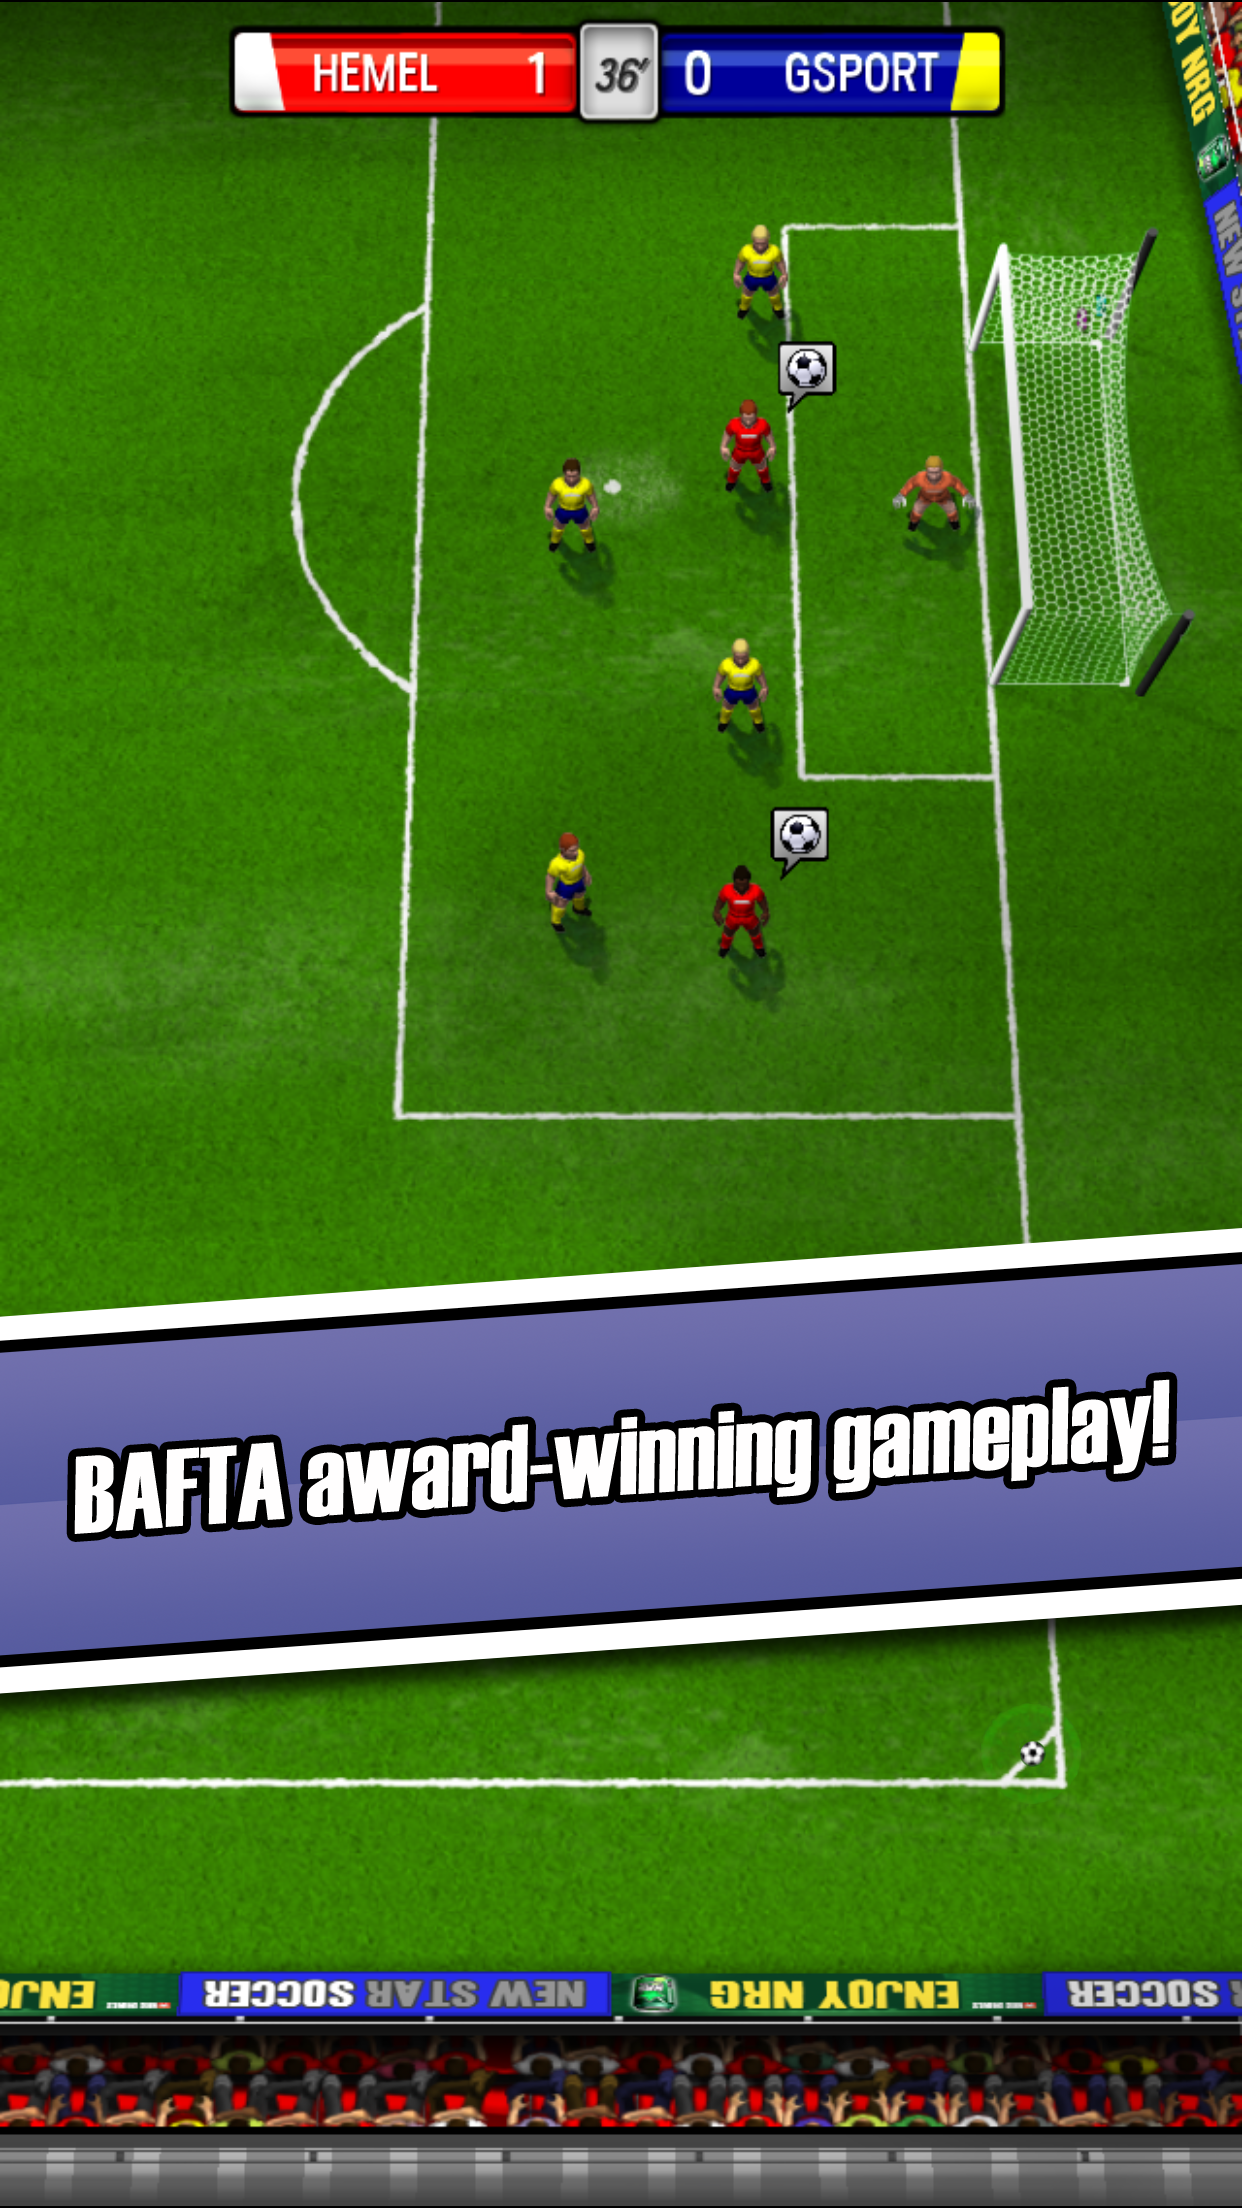 New Star Soccer Apk 4 19 Download For Android Download New Star Soccer Apk Latest Version Apkfab Com